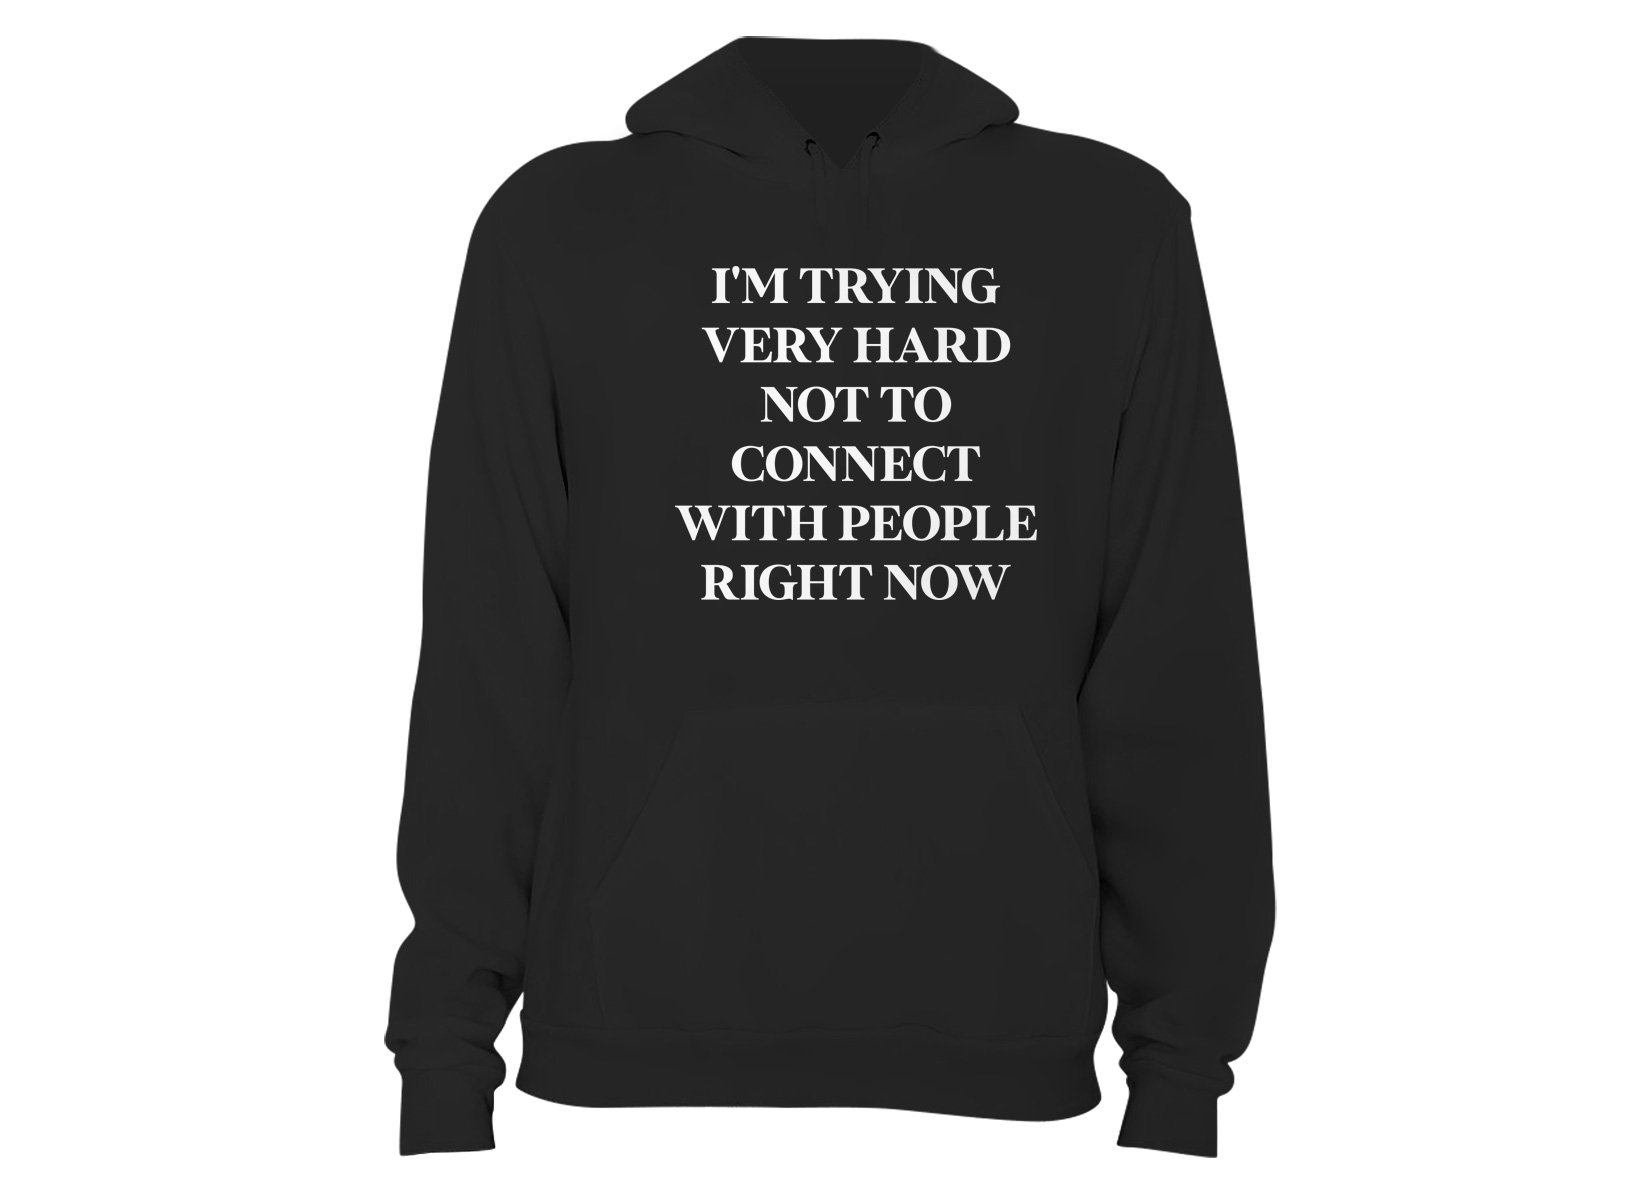 I'm Trying Very Hard Not To Connect With People Right Now on Hoodie